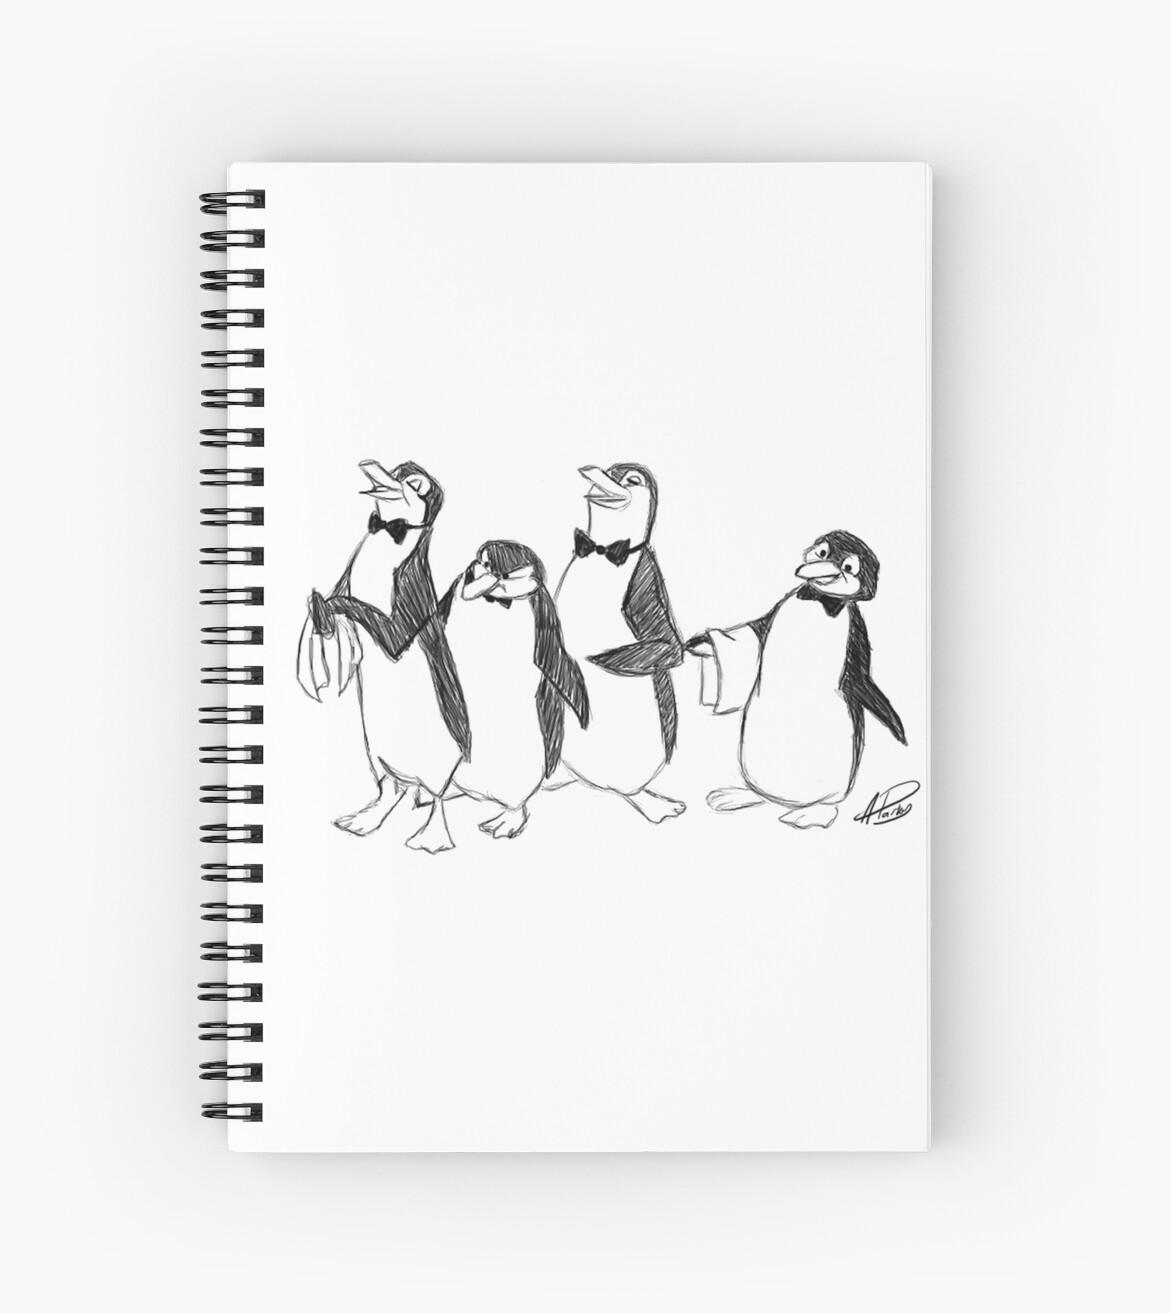 Pingouin Mary Poppins Pingouins De Mary Poppins Sketch Cahier à Spirale By Apparky